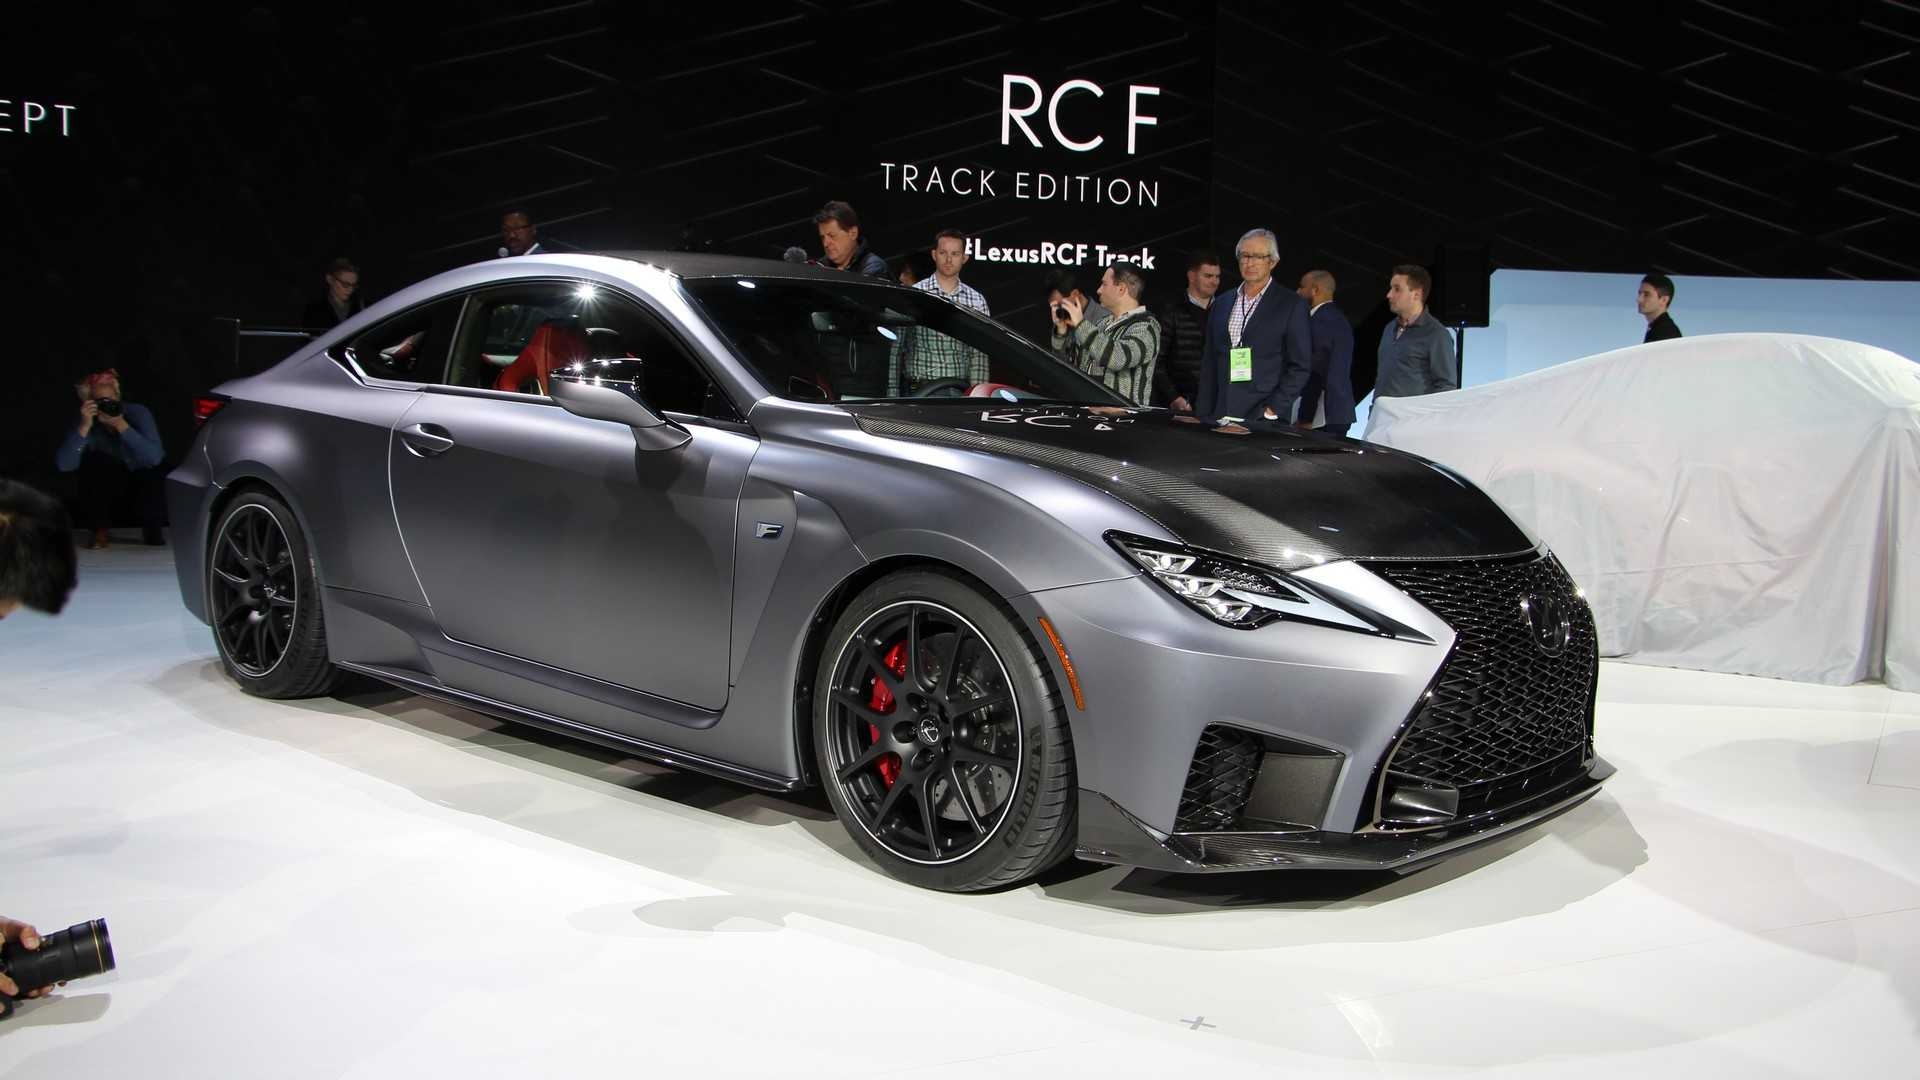 70 Concept of Lexus Rc F 2020 Price Concept by Lexus Rc F 2020 Price